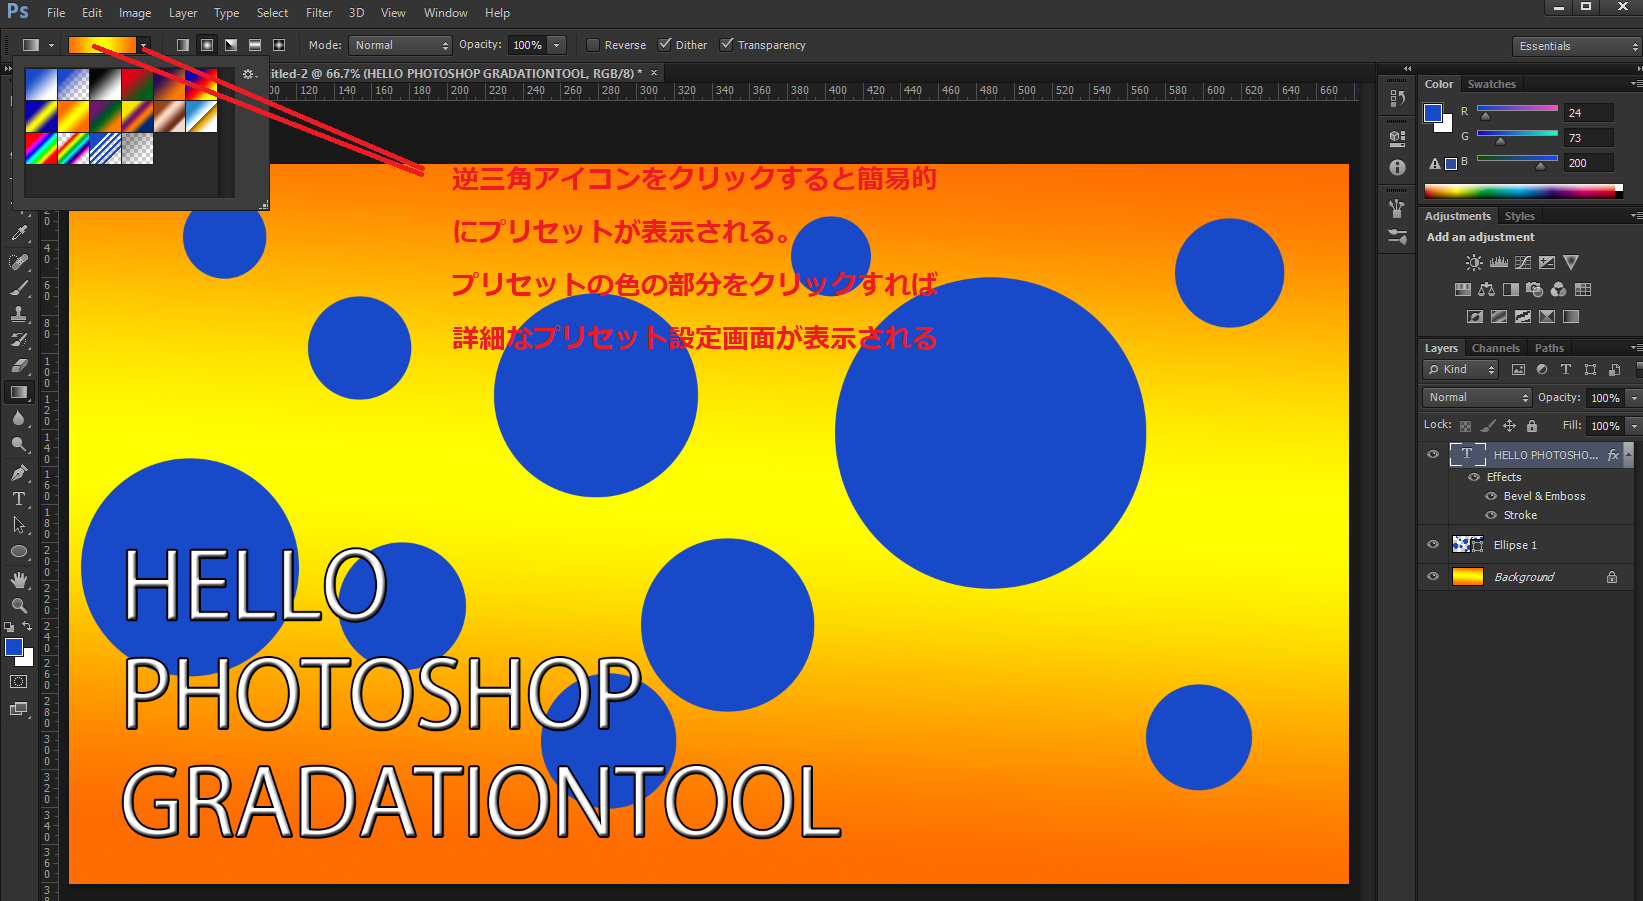 photoshop gradationtool(2)